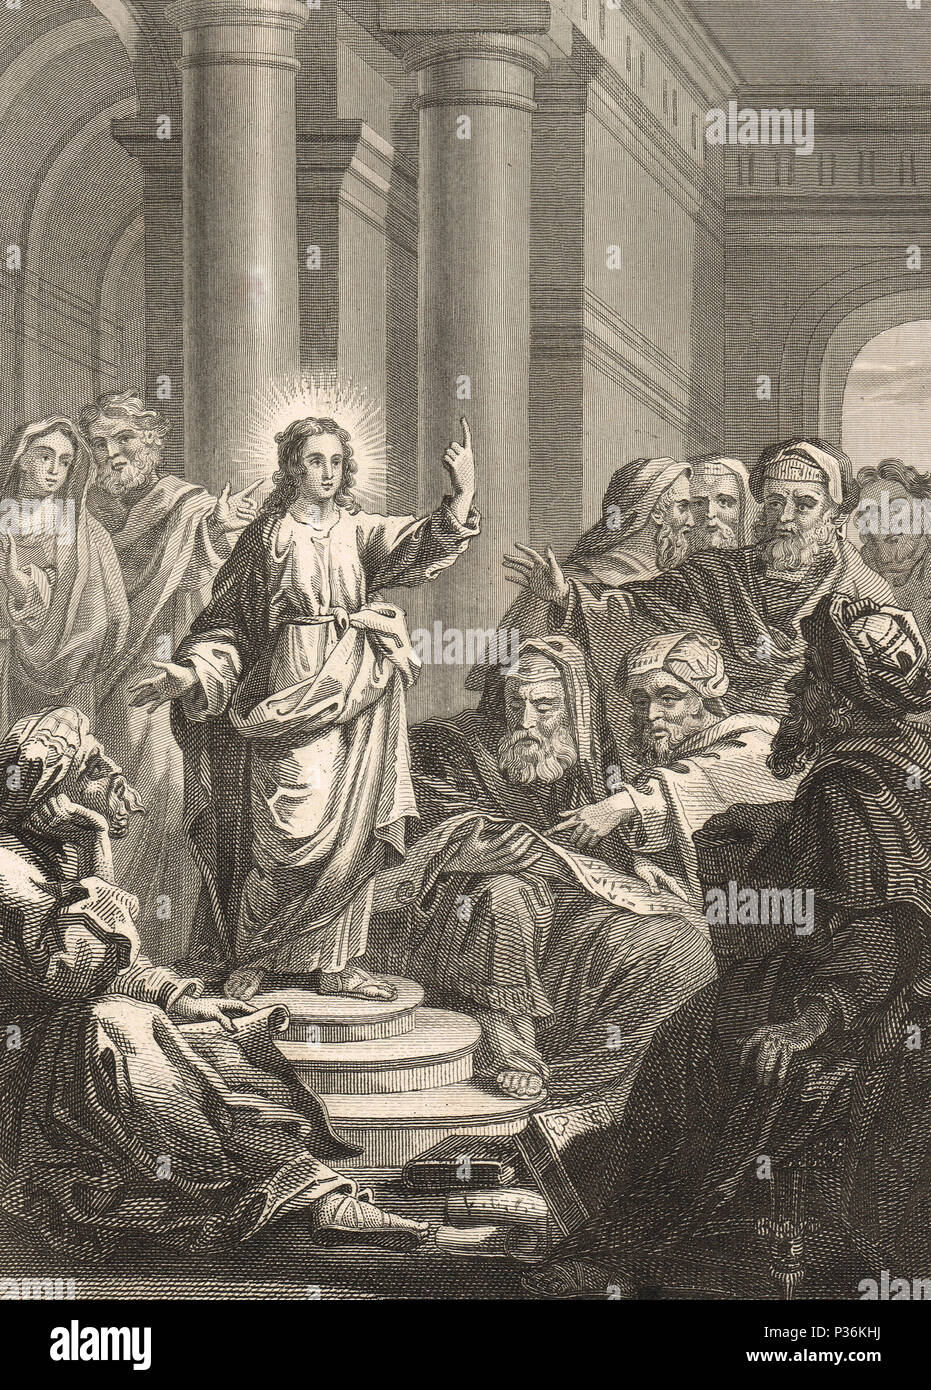 The Finding in the Temple, also called 'Christ among the Doctors' or the Disputation.  Jesus at the age of twelve in discussion with the elders - Stock Image